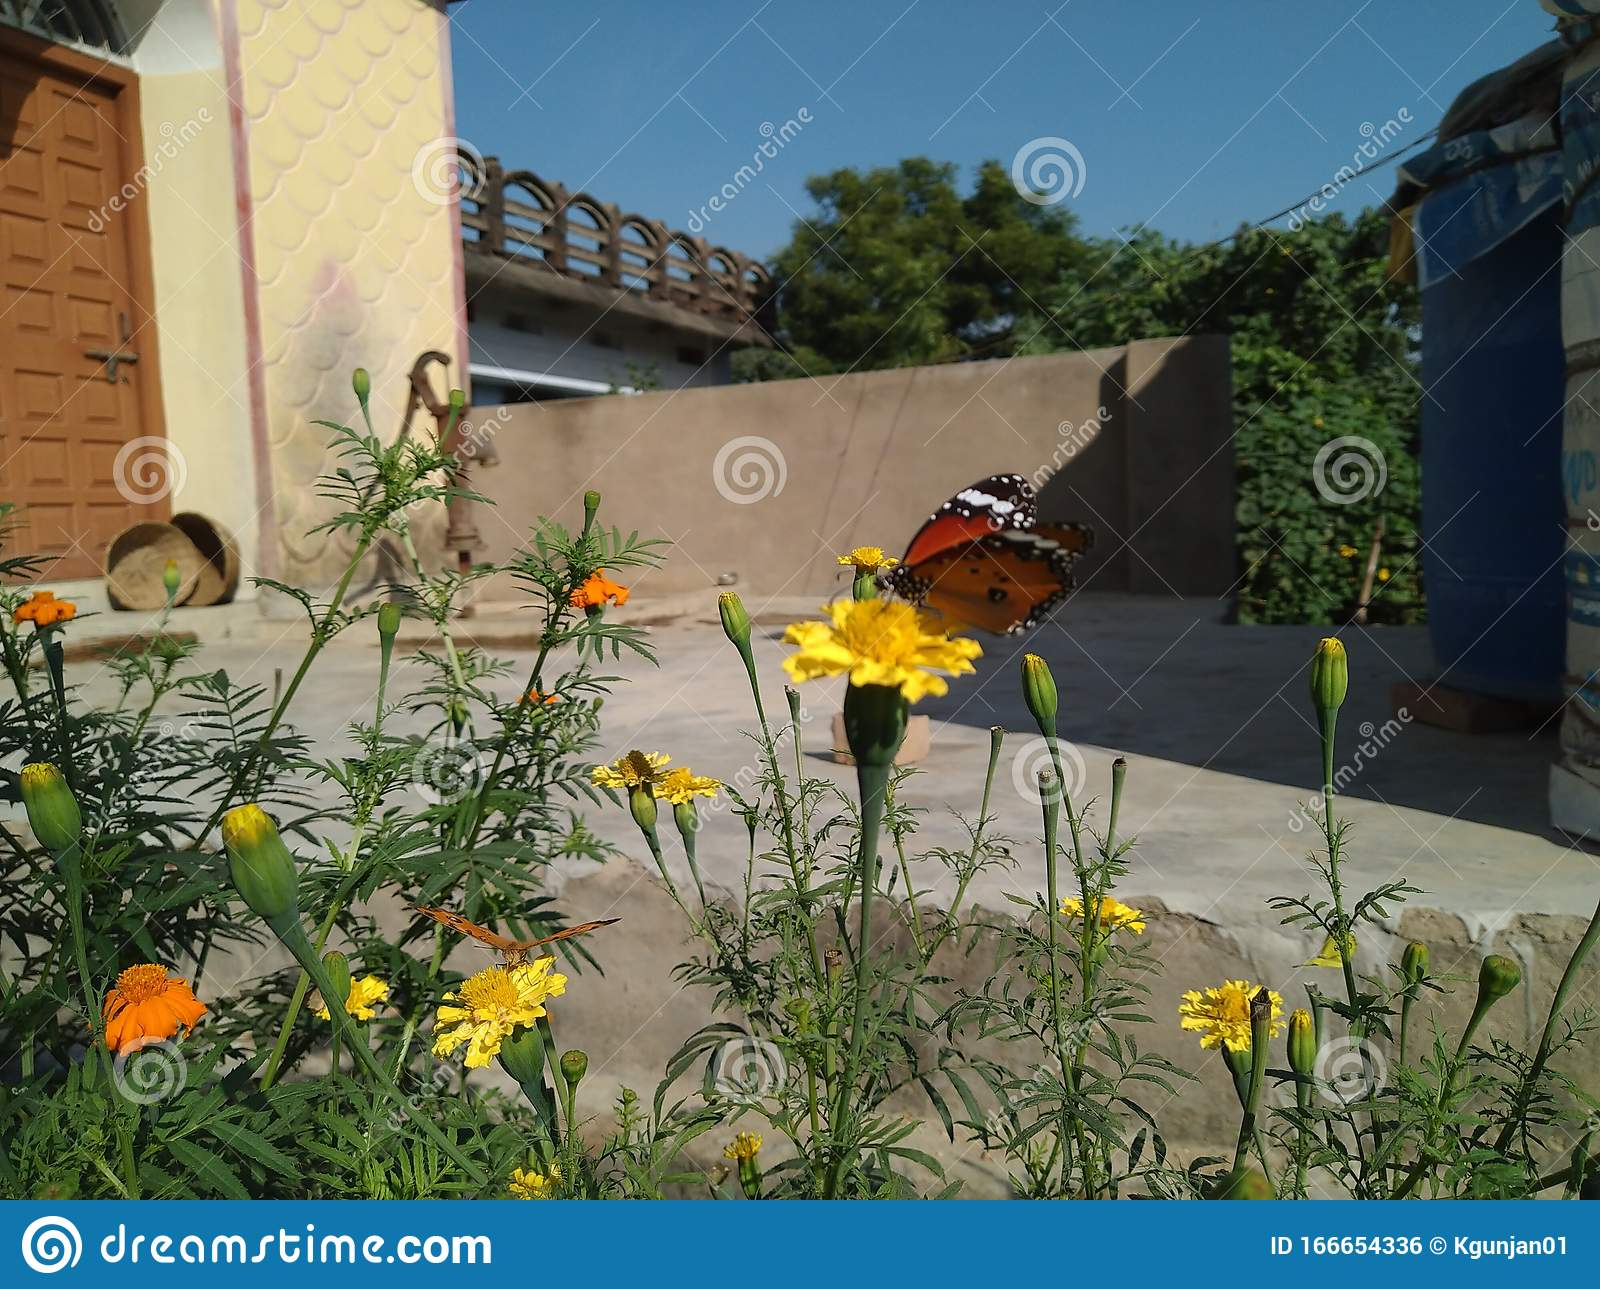 One Of The Most Beautiful Type Of Butterflie On The Flowers Looking Gorgeous Stock Photo Image Of Flowers Type 166654336